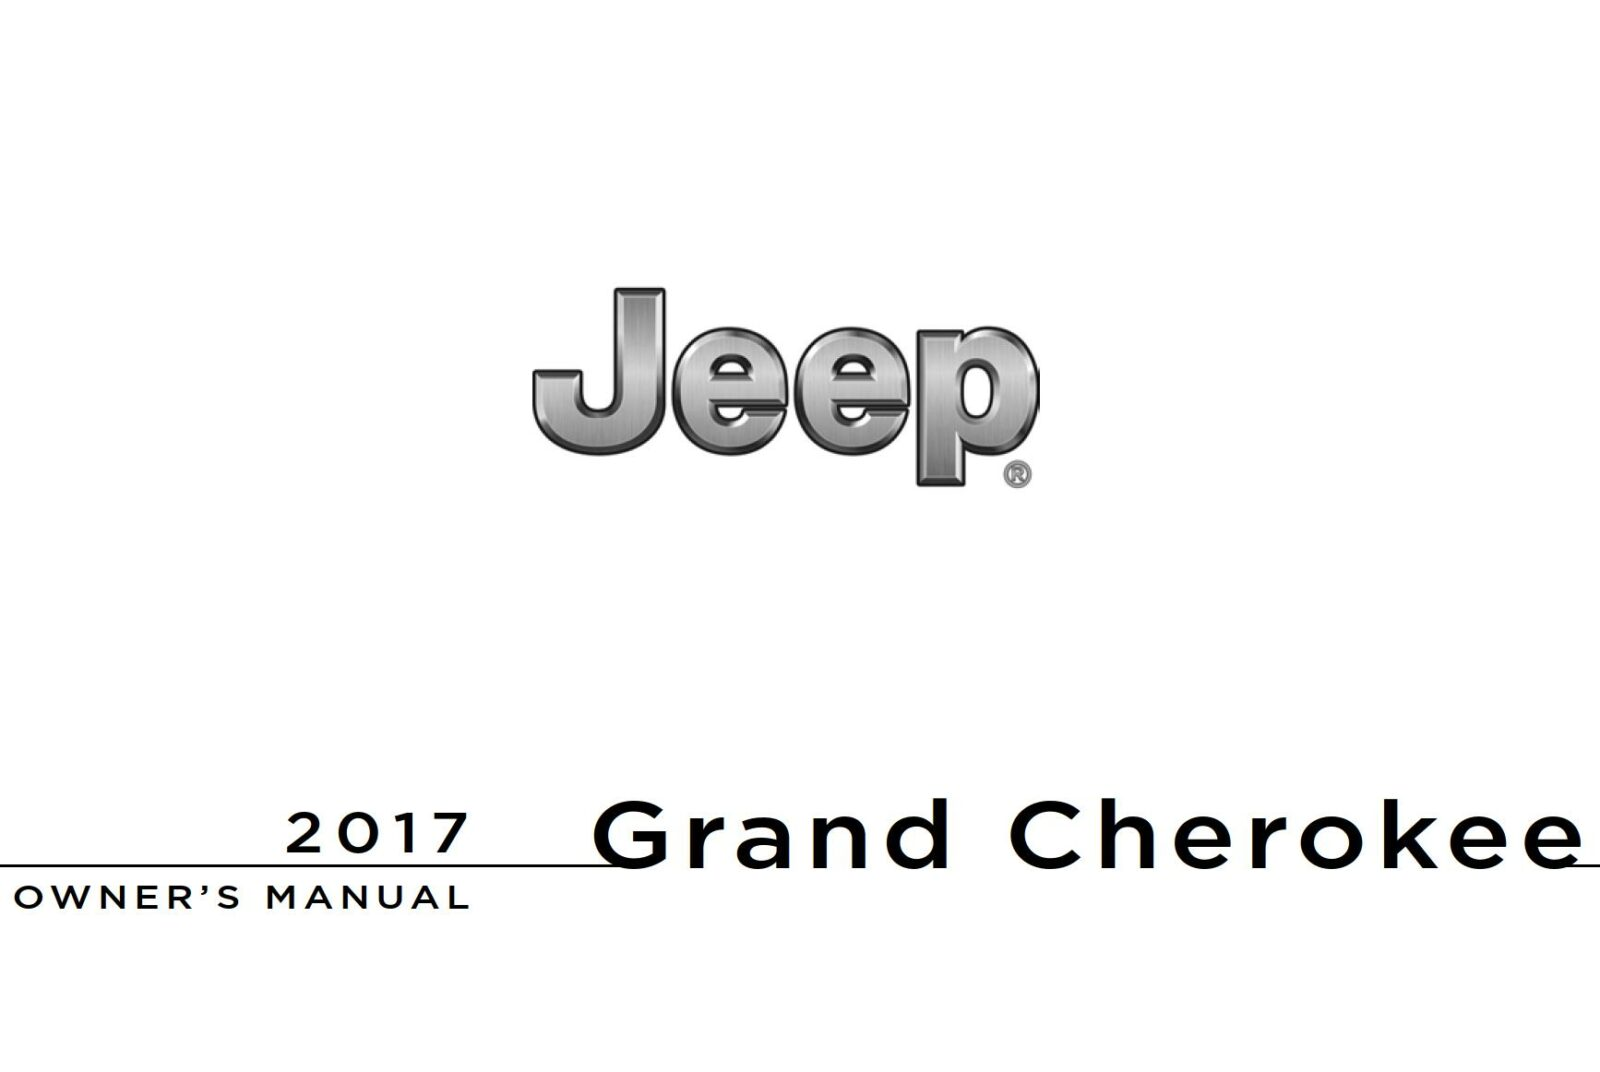 Jeep Grand Cherokee 2017 Owner's Manual